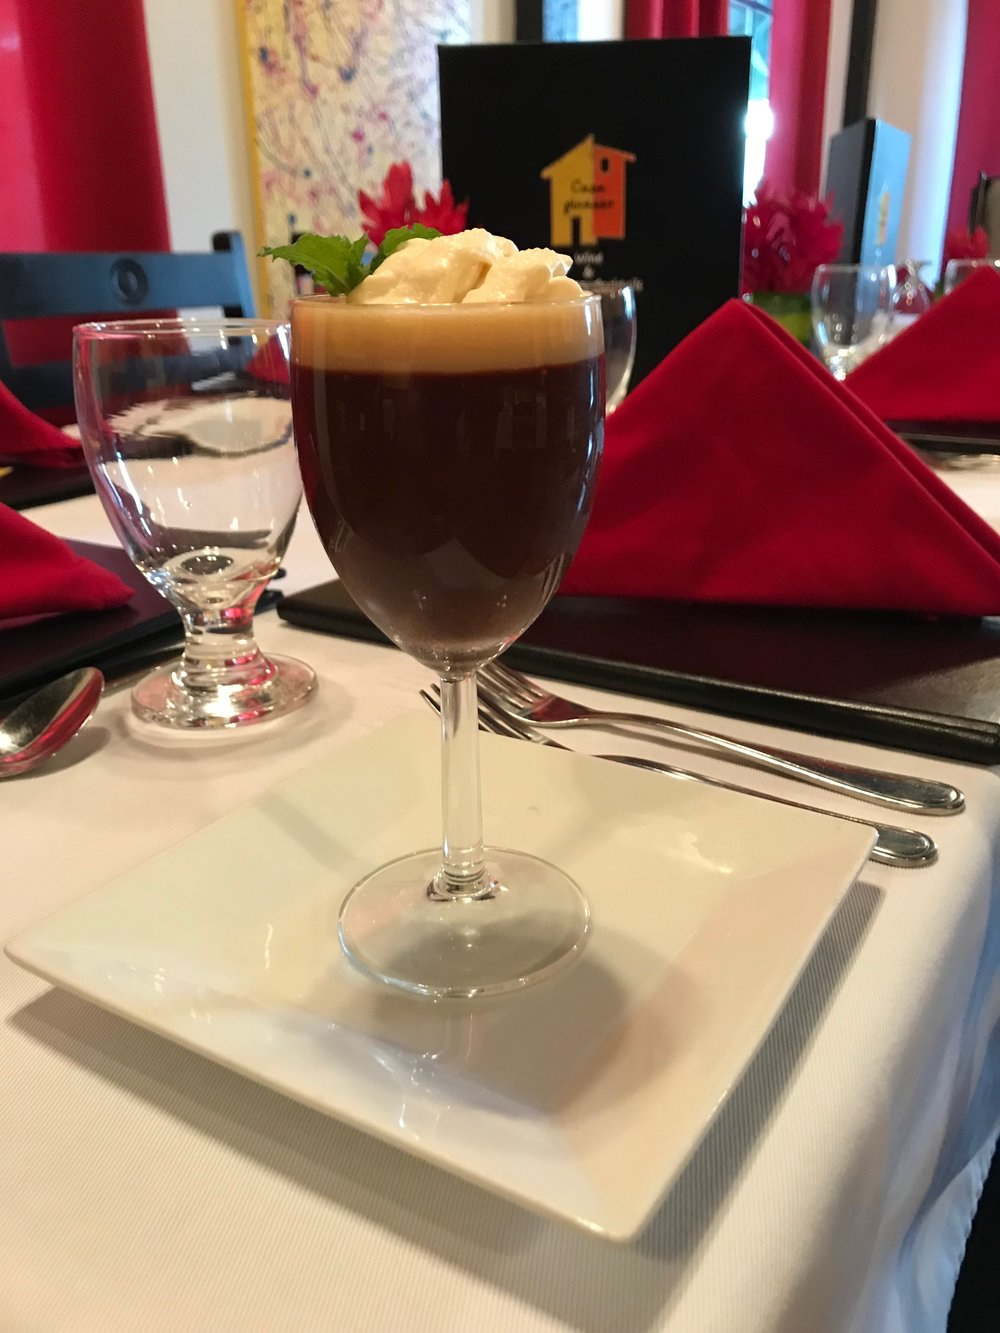 - Pot de CreamA rich chocolate custard with cream, milk, and egg yolk, topped with a Bailey's caramel sauce and a Bailey's infused Chantilly cream